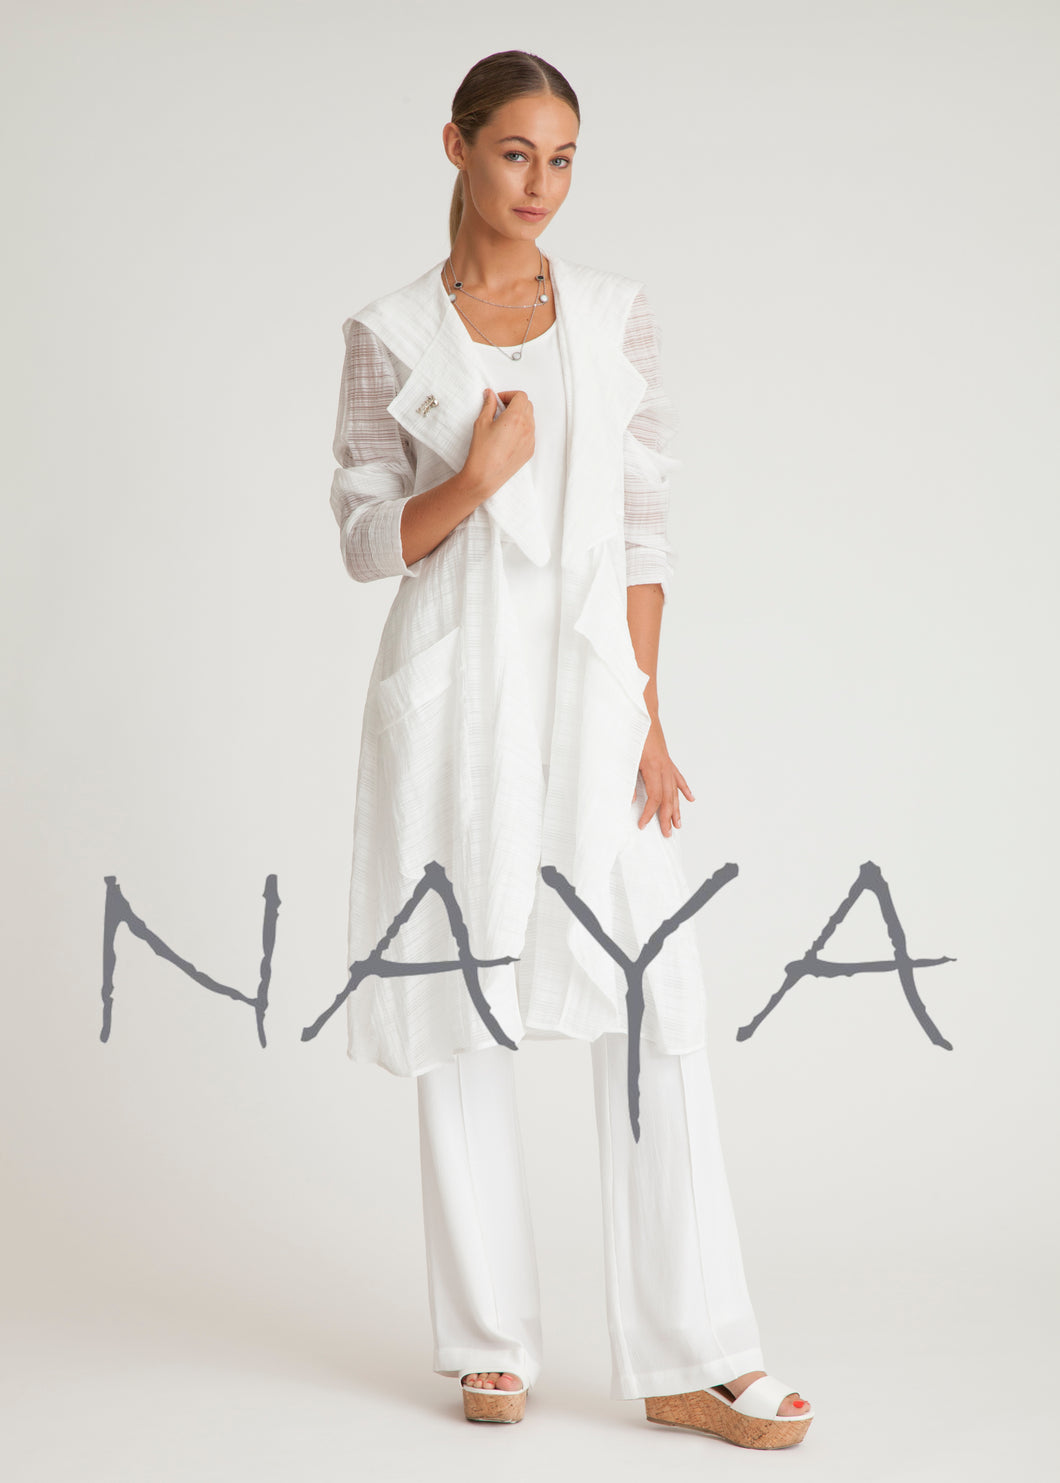 Naya Organza Summer Coat in Black or White NAS19103 | The LBD Boutique & Trouser Shop